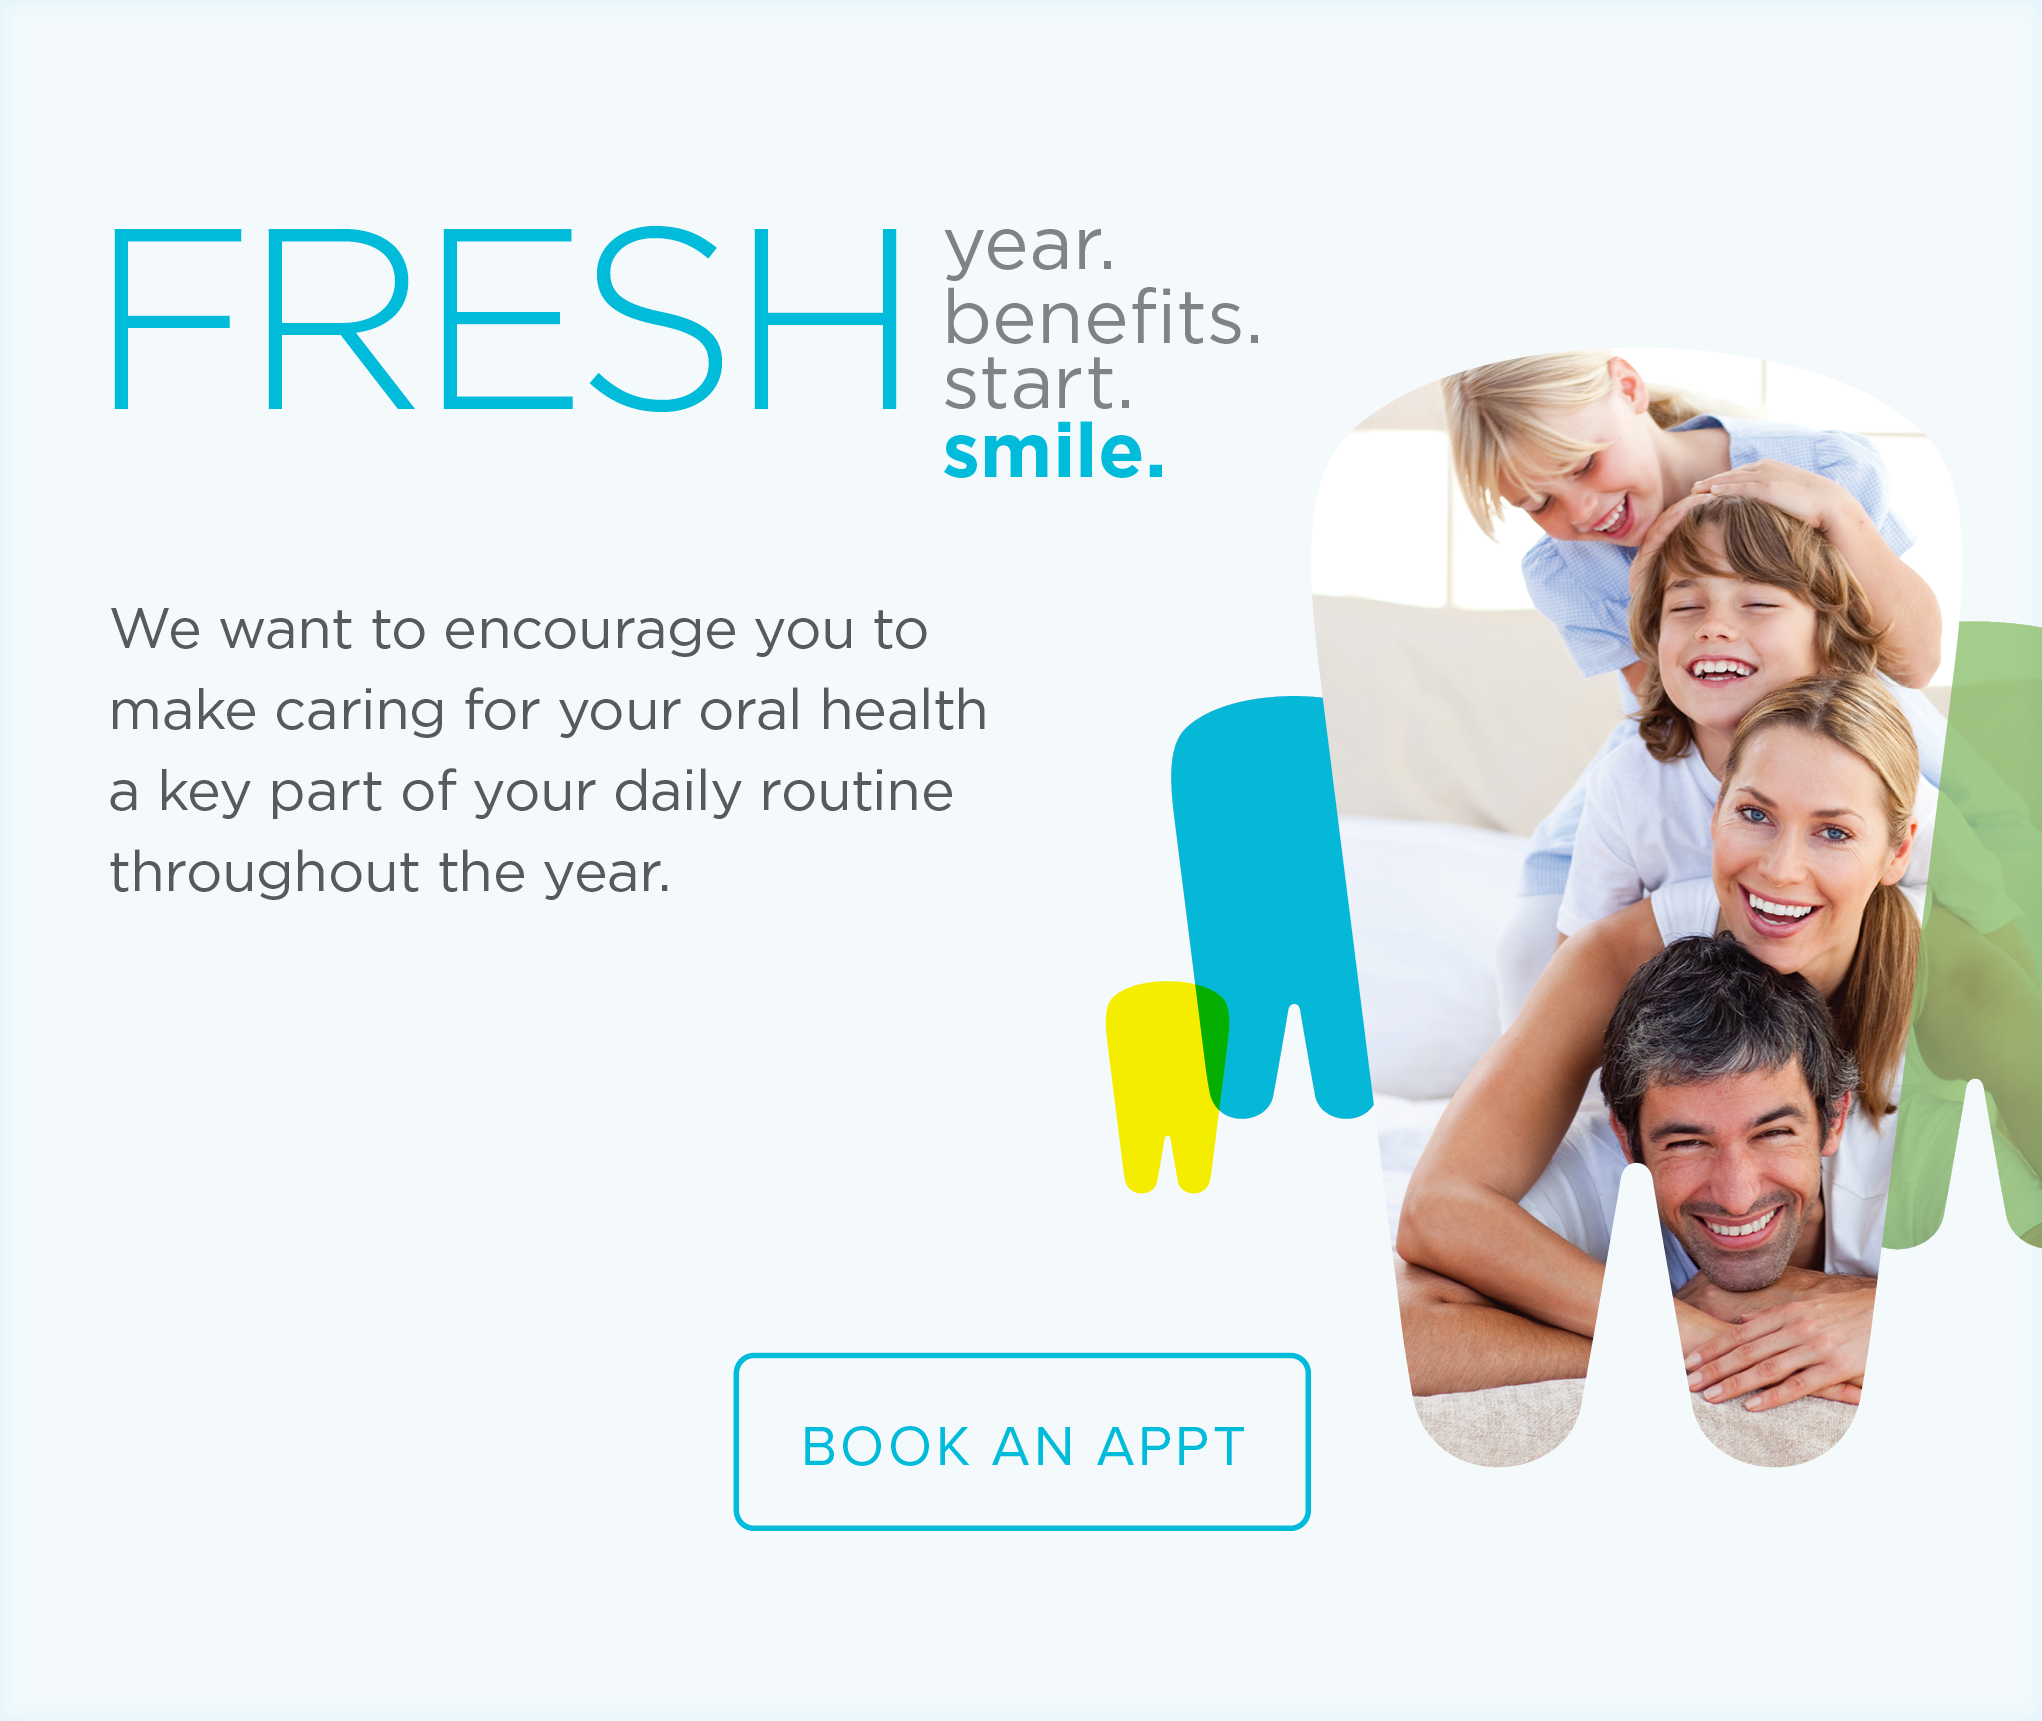 Alamo Smiles Dental Group - Make the Most of Your Benefits